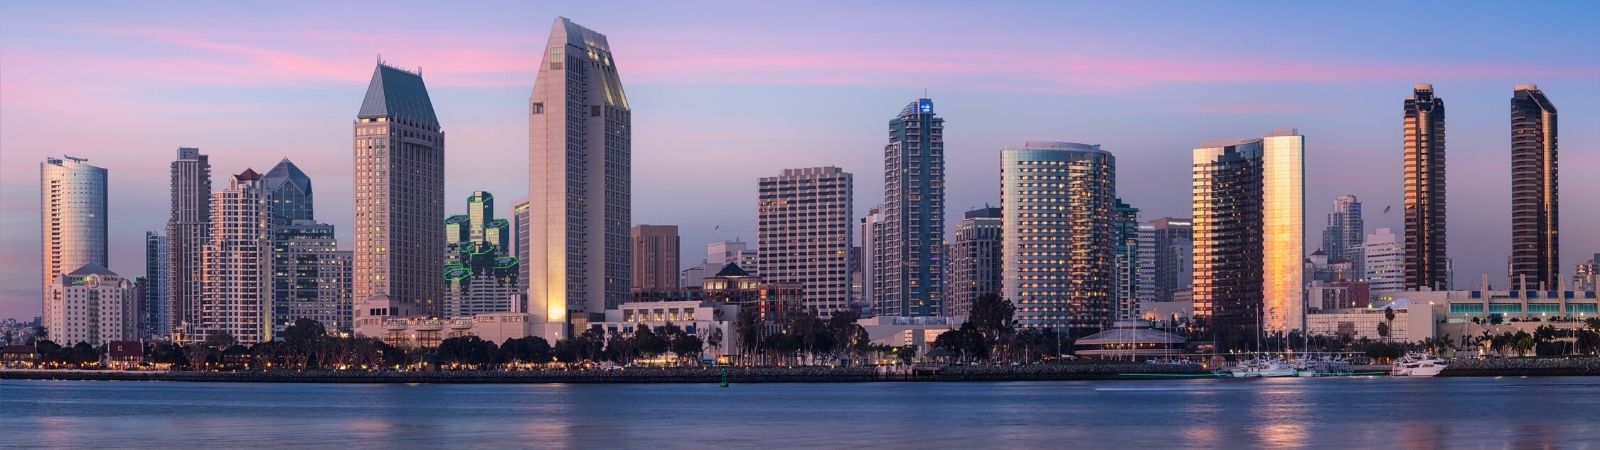 San Diego where Source Intelligence is located  skyline image taken from the bay with a pastel sunset sky behind.